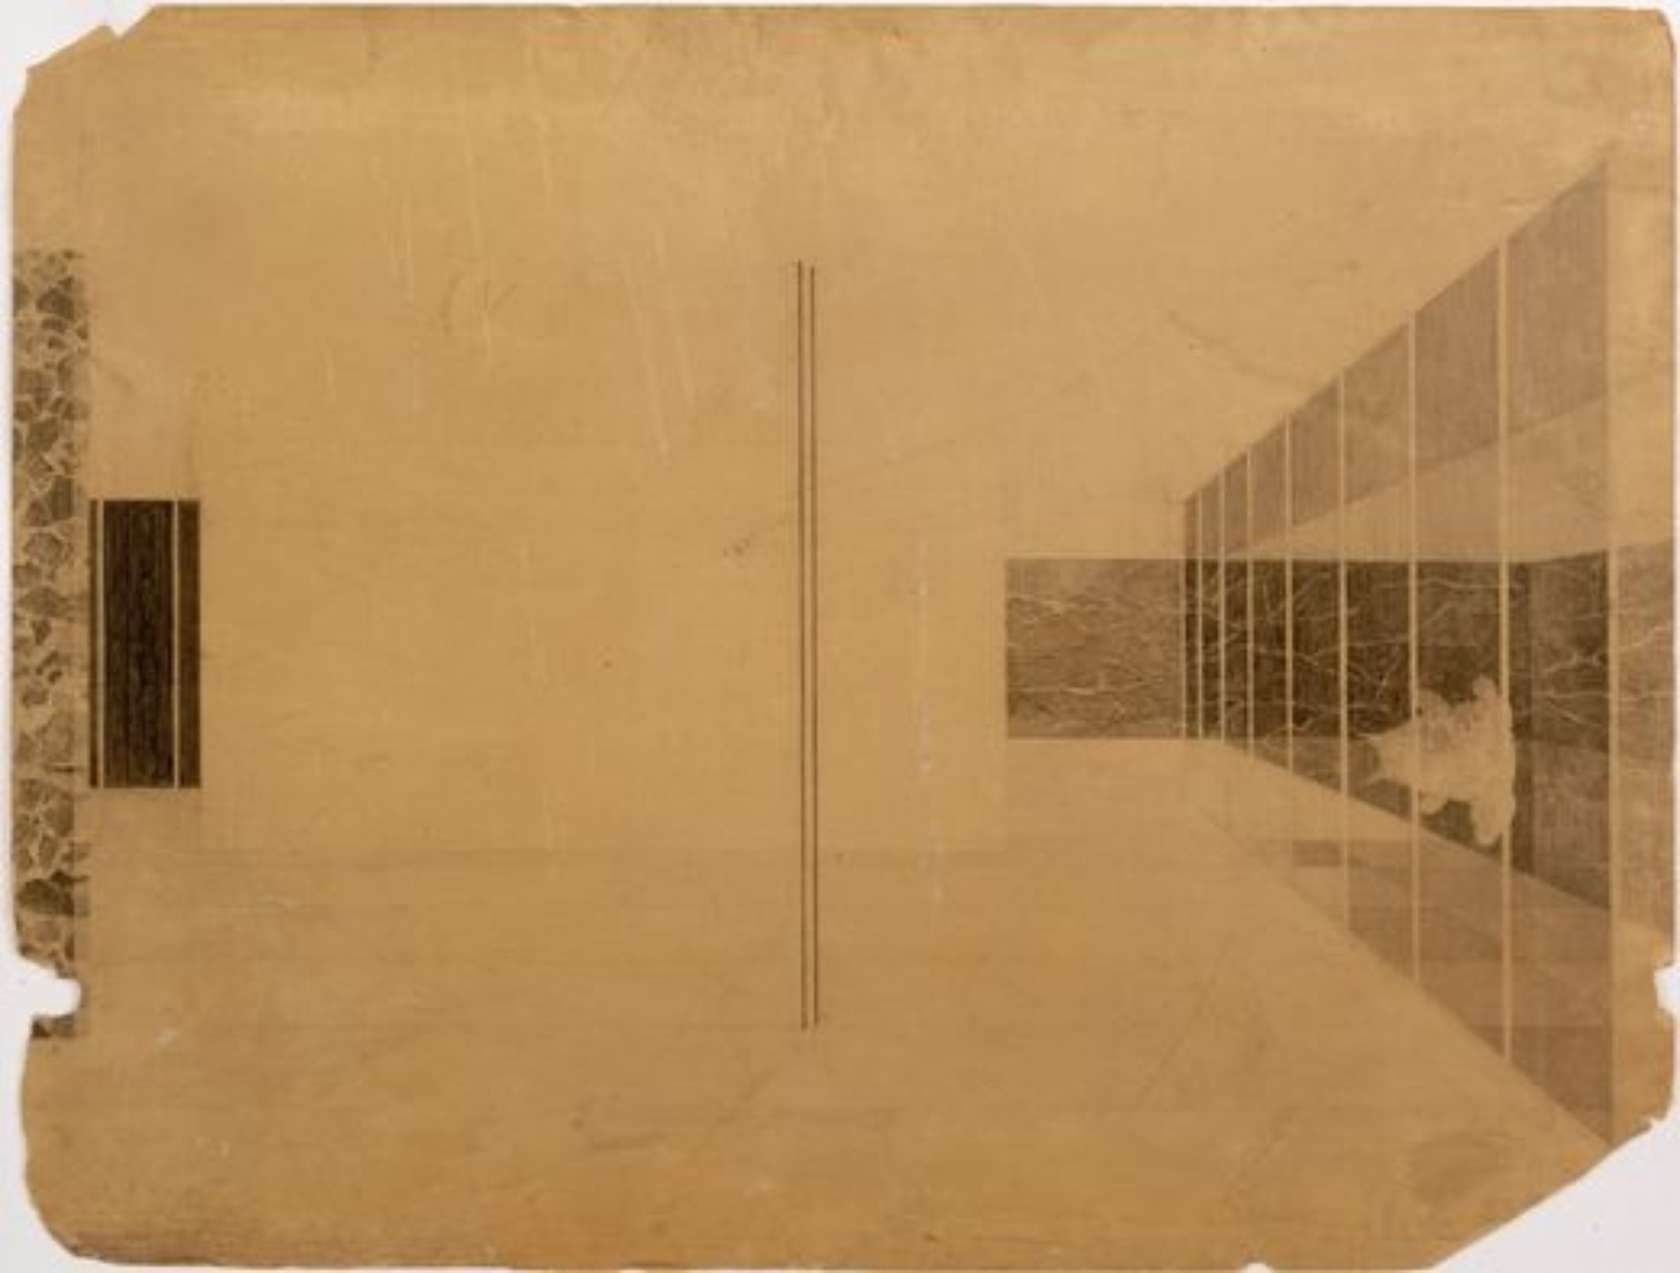 collage interior perspective barcelona pavilion ludwig mies van der rohe 1928 1929 for. Black Bedroom Furniture Sets. Home Design Ideas